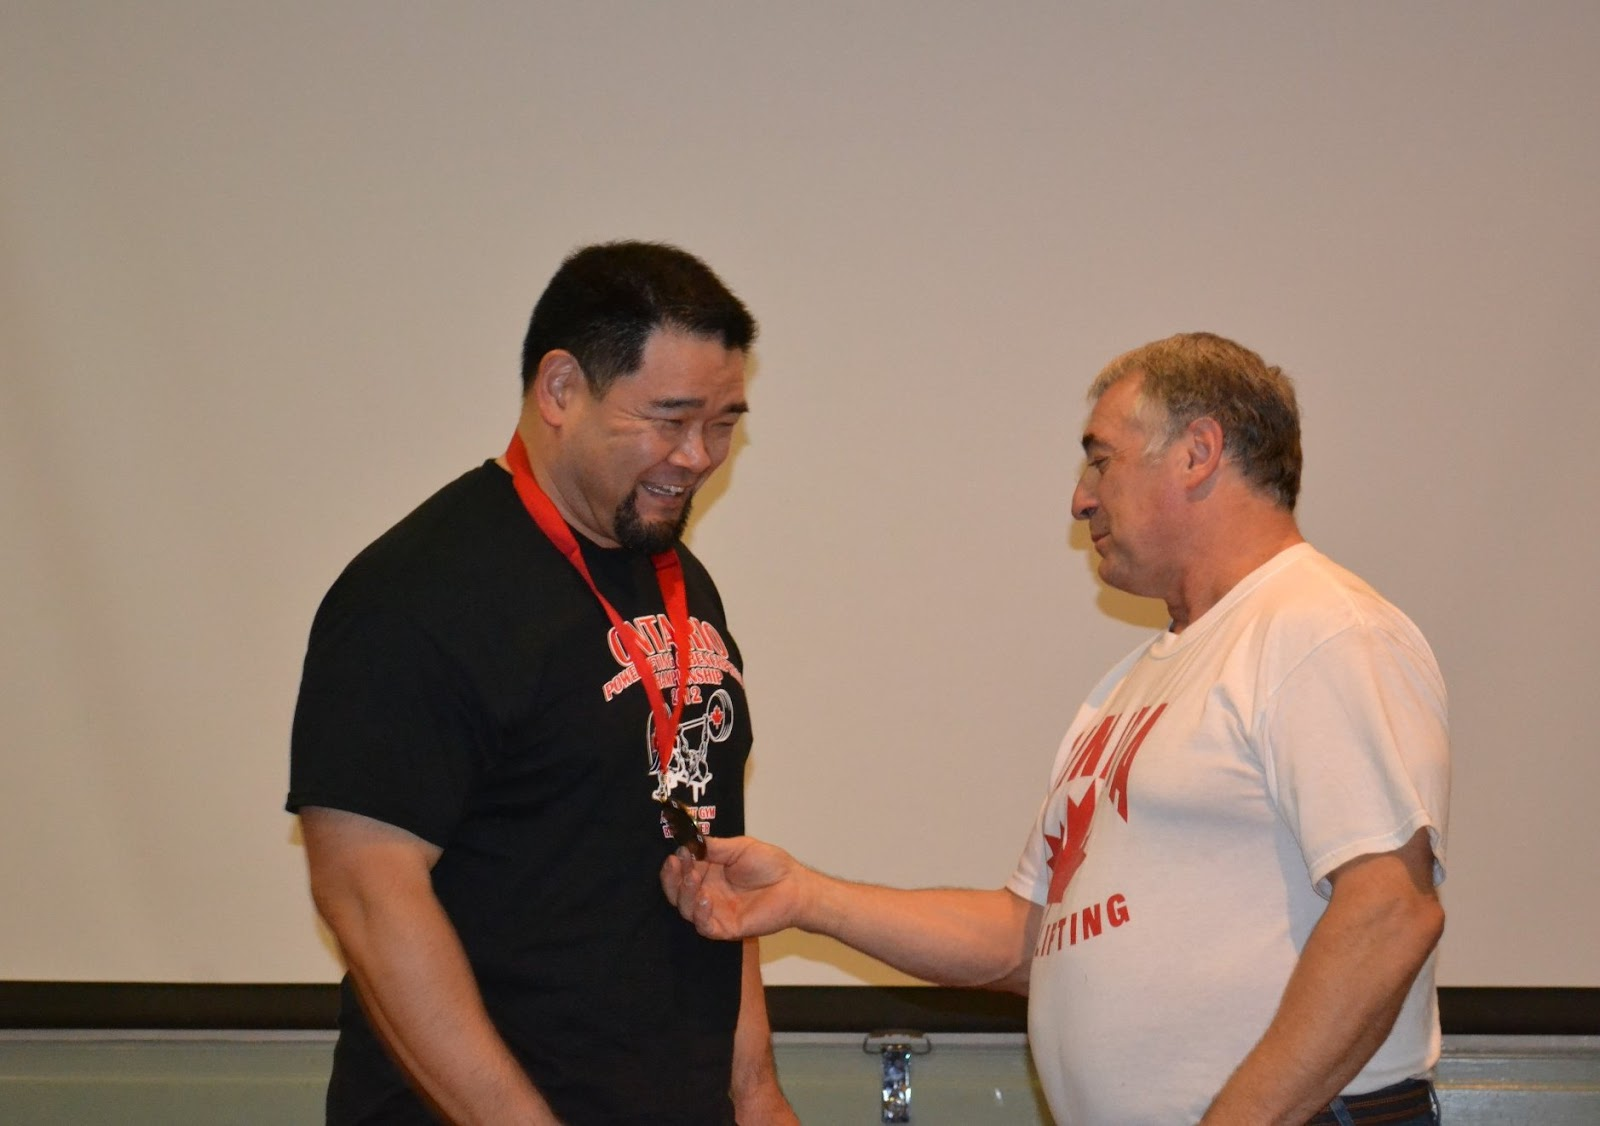 getting a medal from Jerry Marentette